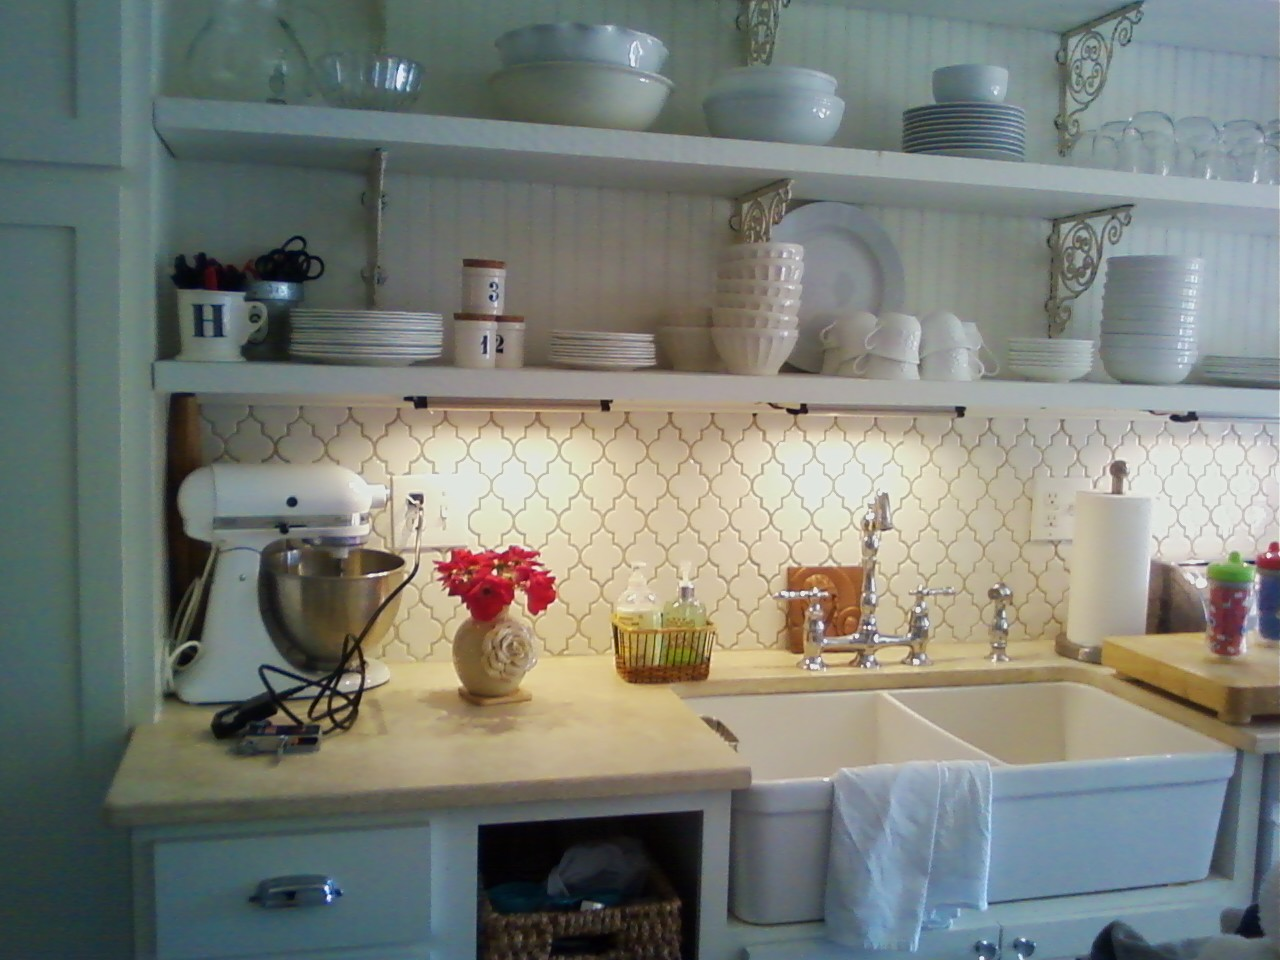 awesome decorative ceramic backsplash by Walker Zanger matched with granite countertop plus sink and faucet for kitchen decor ideas